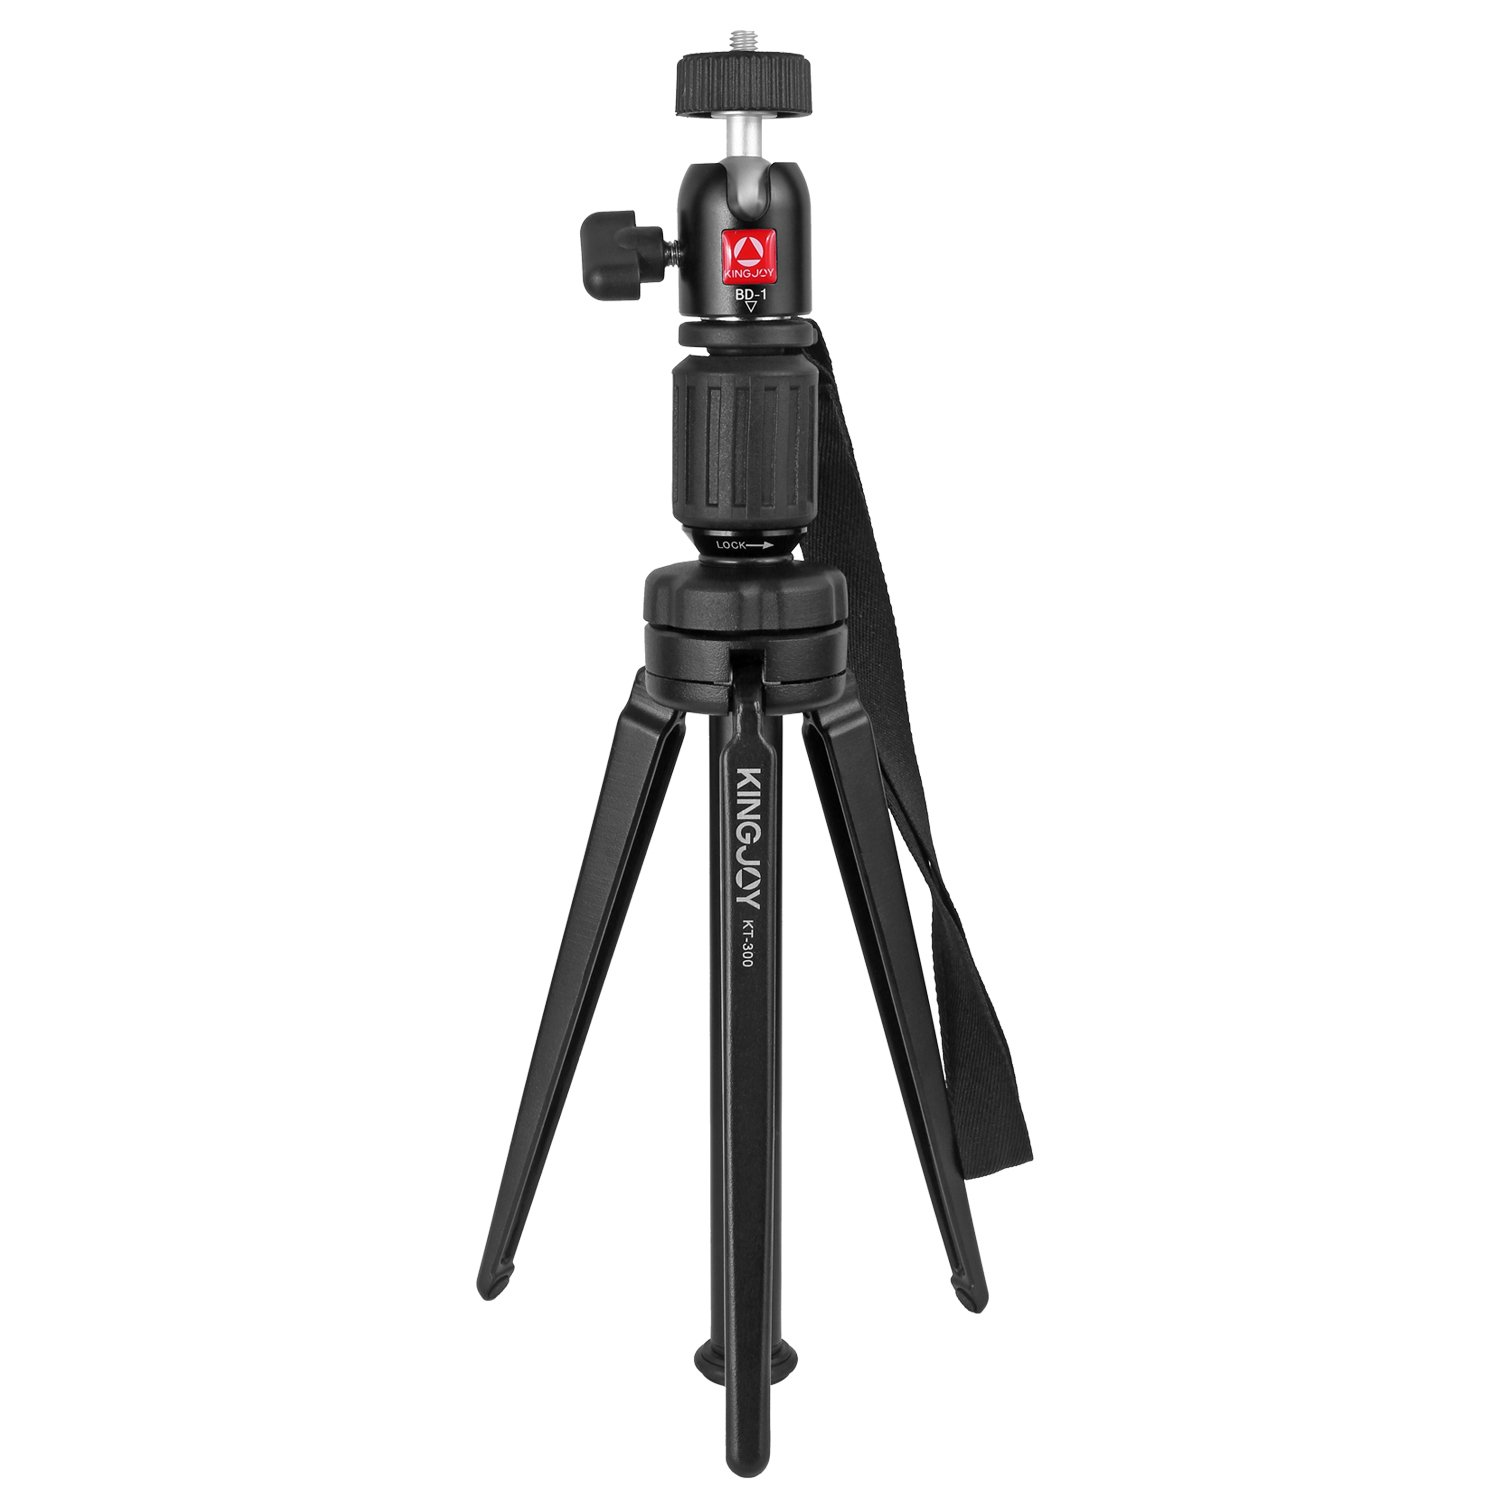 KINGJOY Portable Aluminum Alloy Mini Video Tabletop Tripod with Swivel Ball Head for GoPro Hero 4/3+/3, Smartphones, and Most DSLR Cameras with 1/4'' Thread